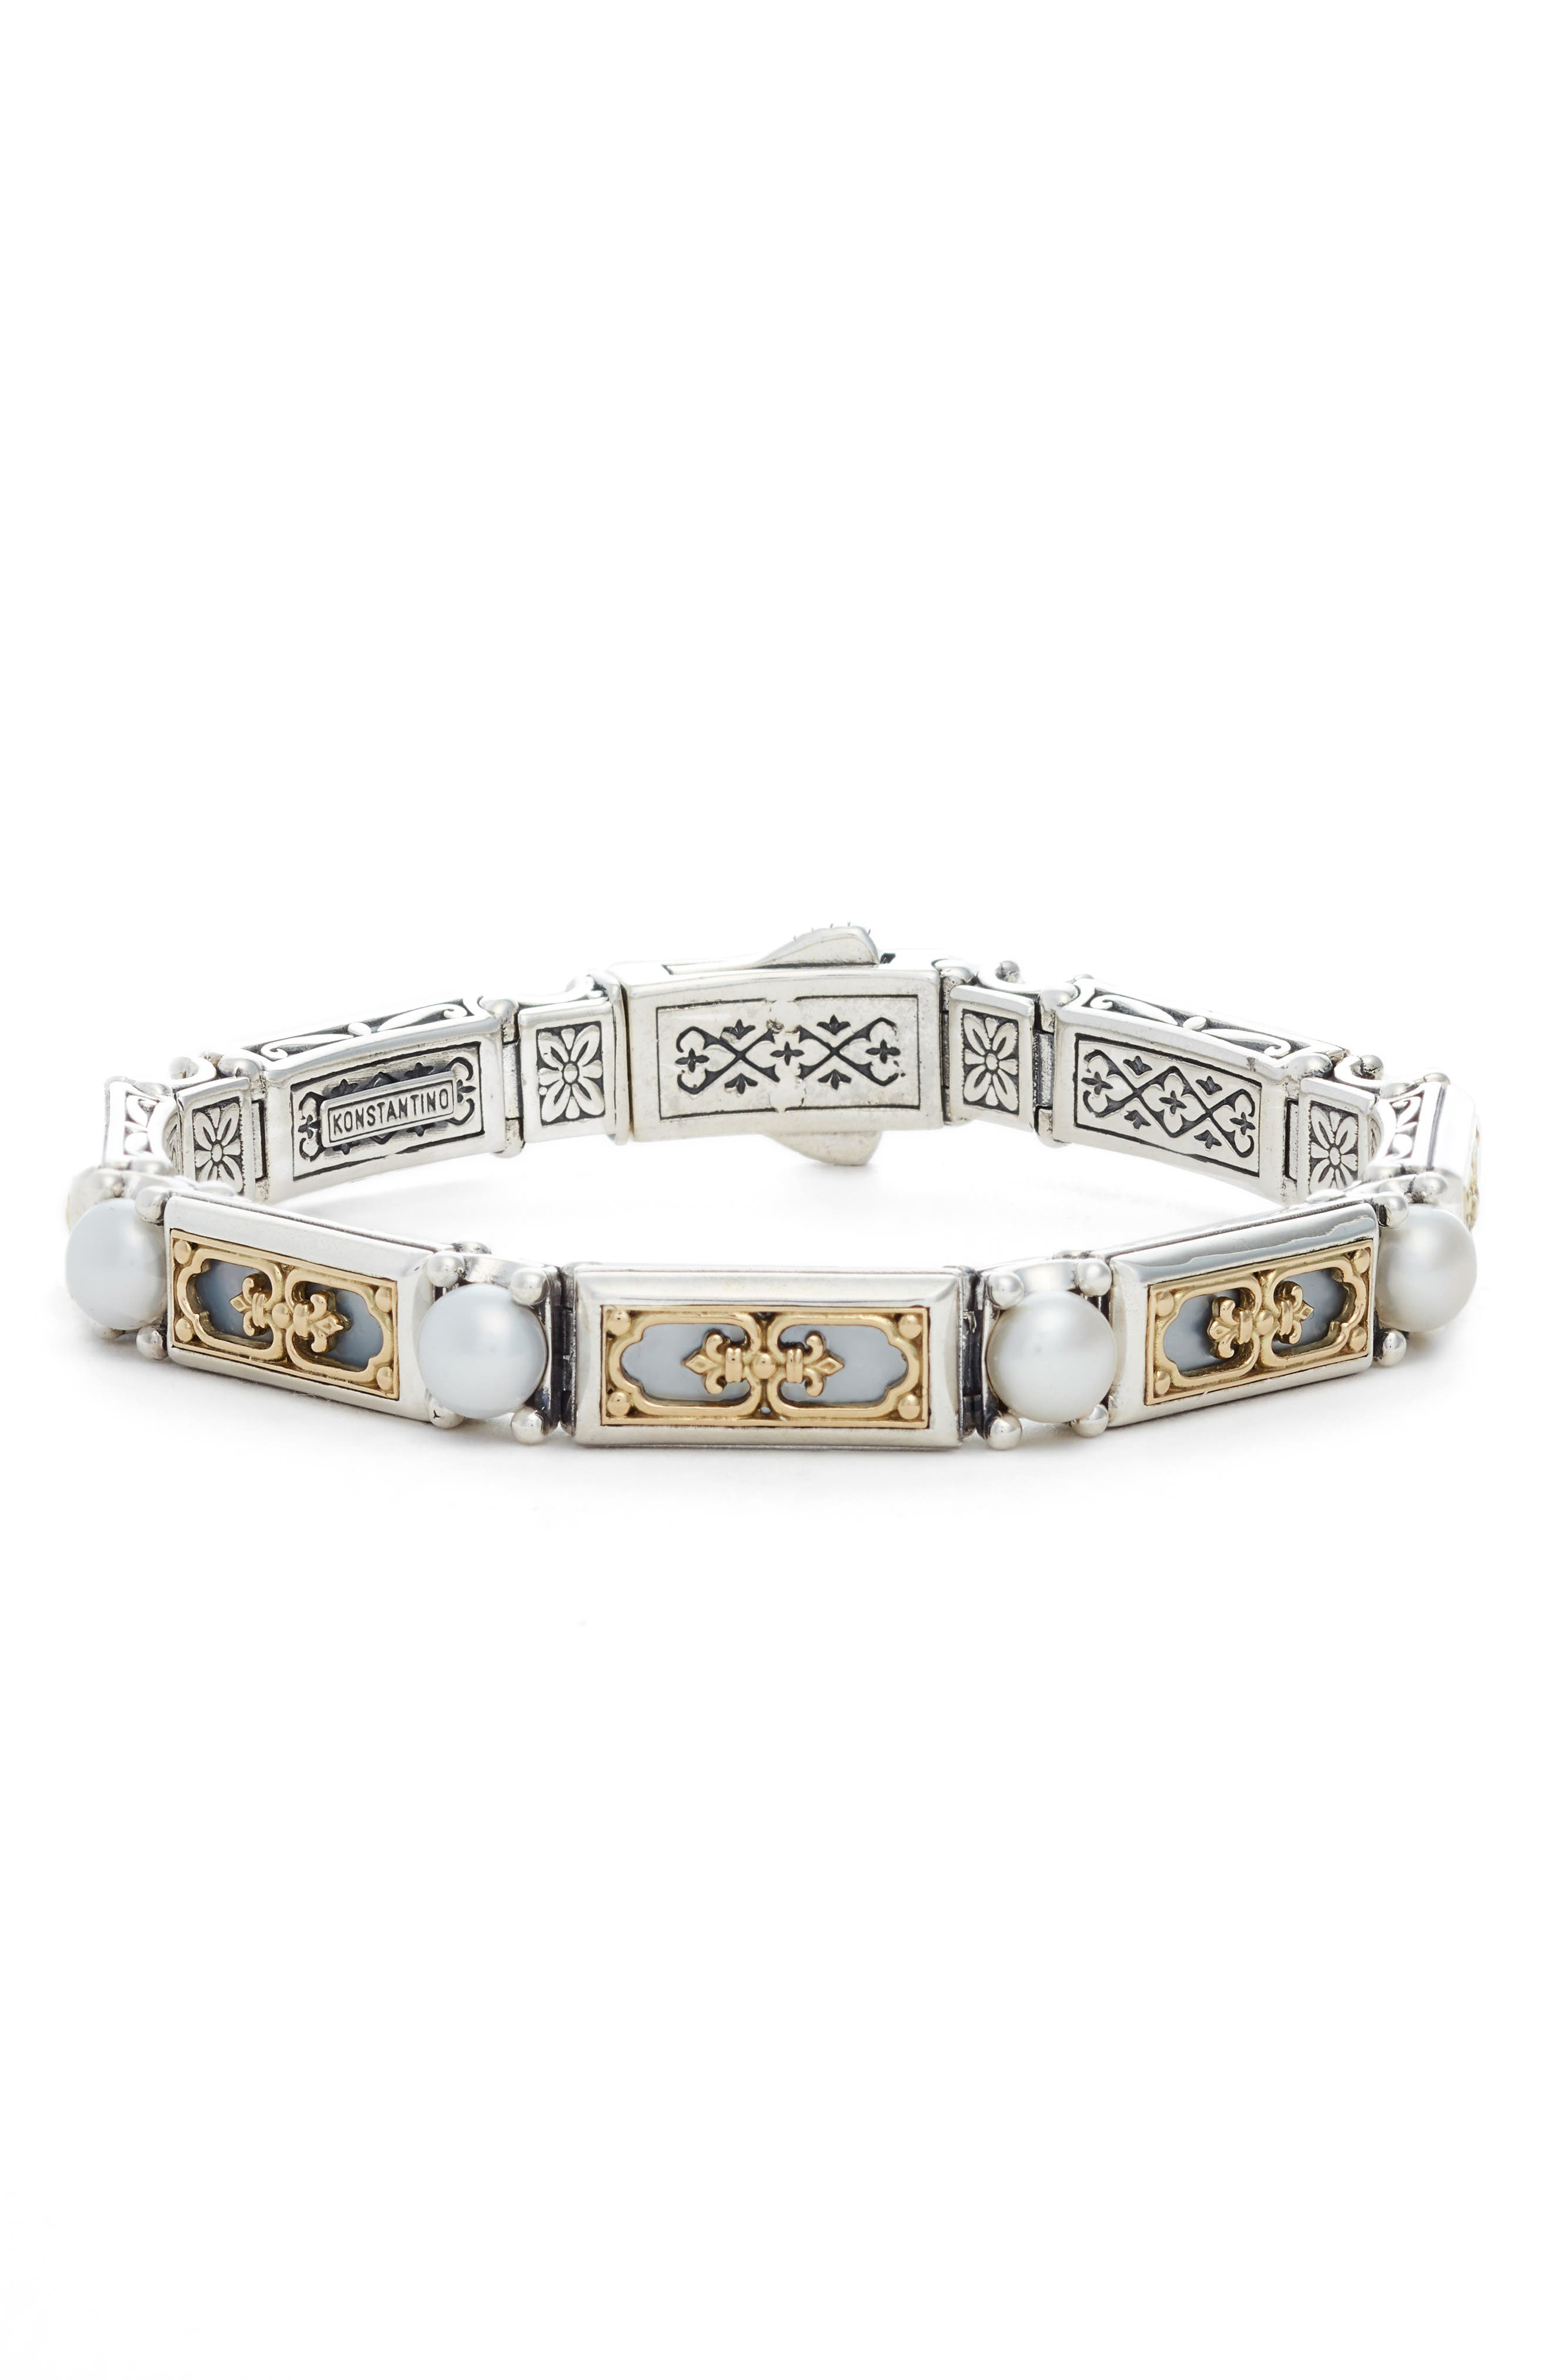 Konstantino Etched Silver & Gold Link Bracelet with Genuine Pearl